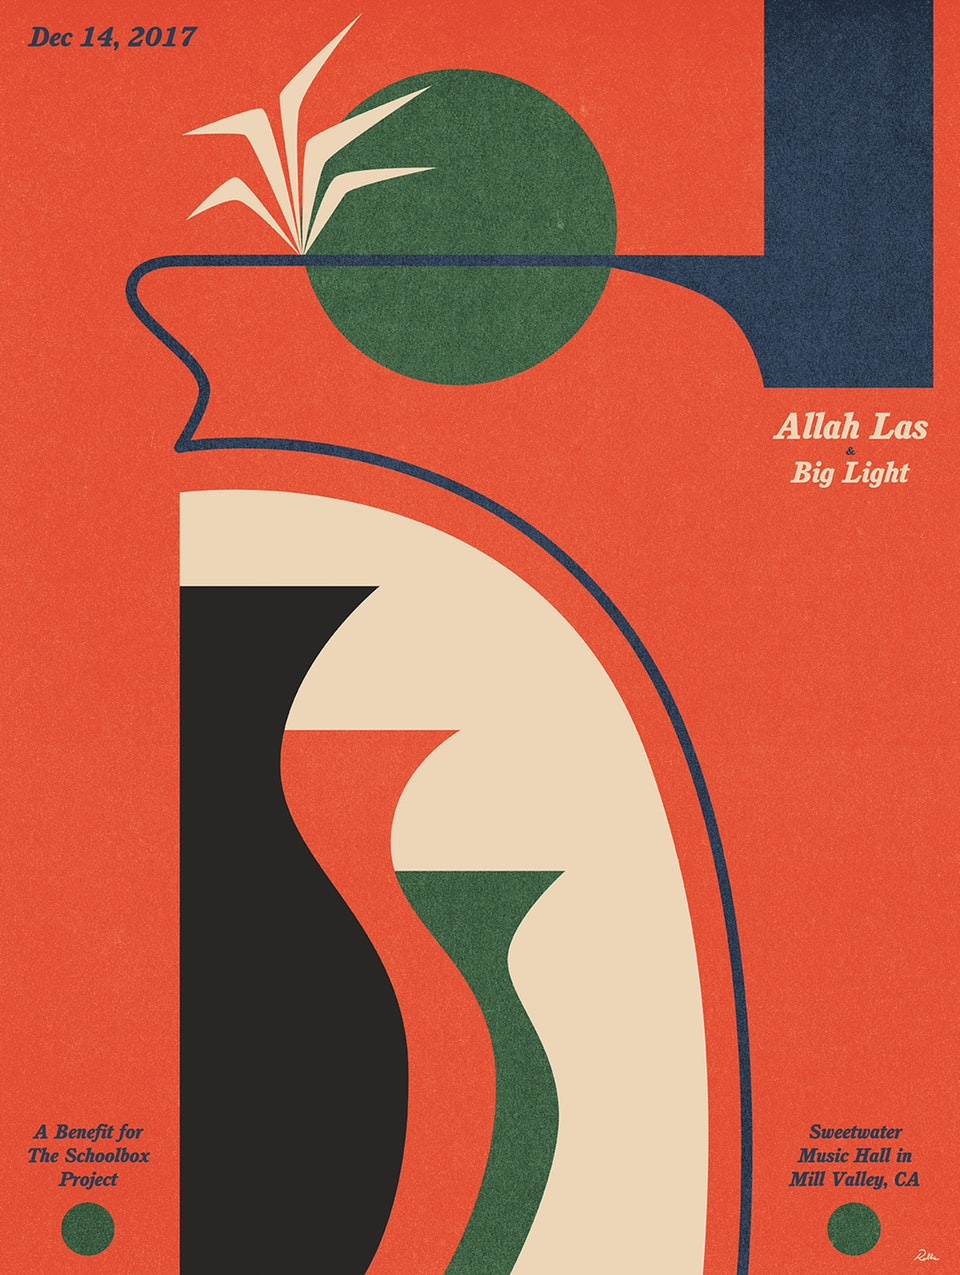 Allah-Las & Big Light Benefit 12/14/17 @ Sweetwater Music Hall Mill Valley, CA